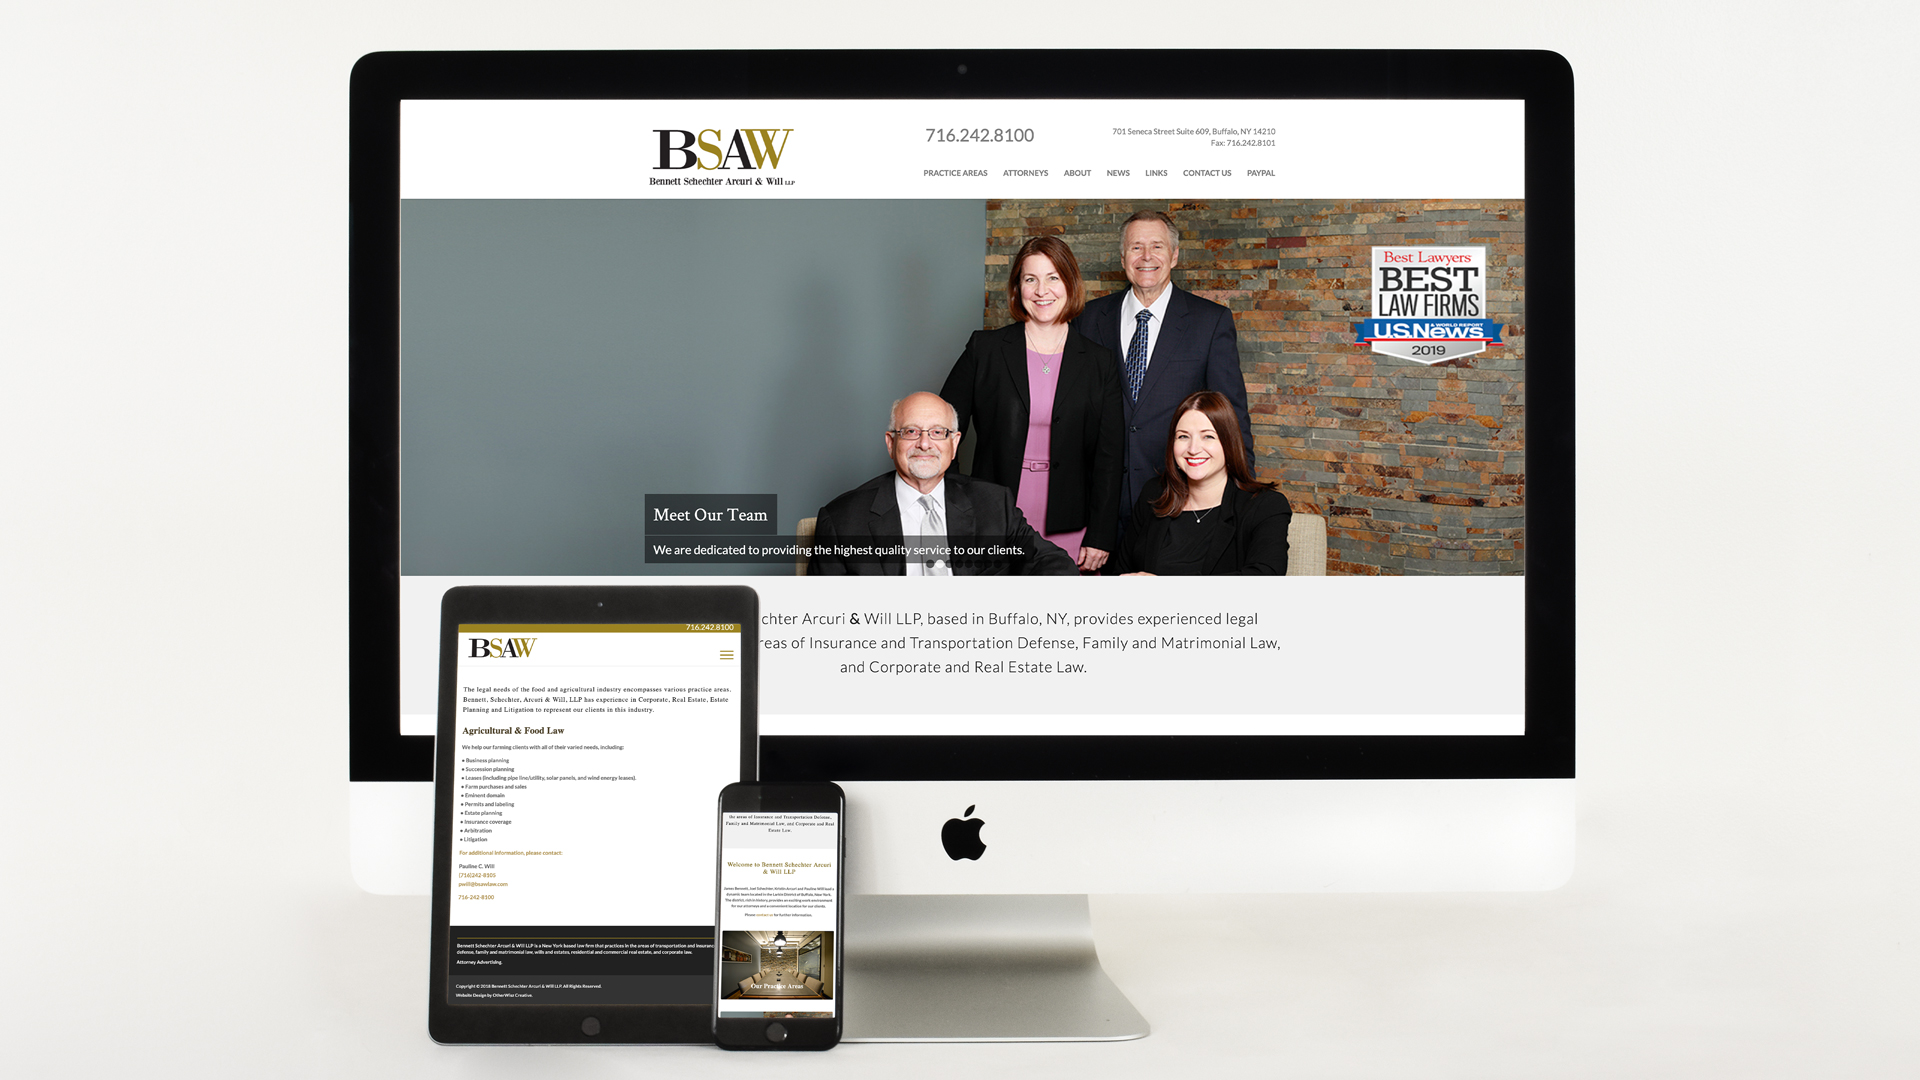 Web design, law firm, mobile responsive, logo design, branding